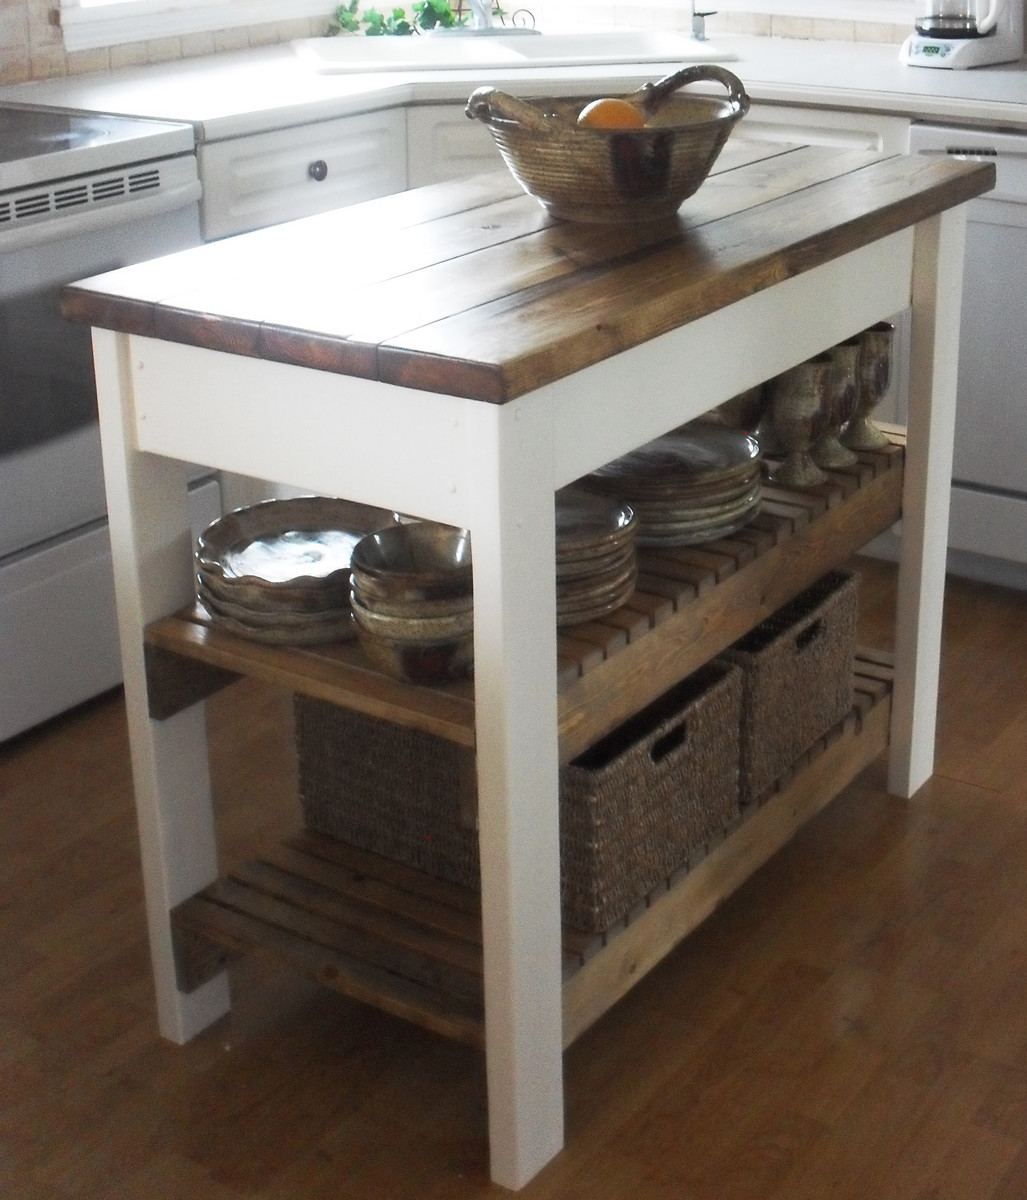 Ana white kitchen island diy projects for Small kitchen island designs